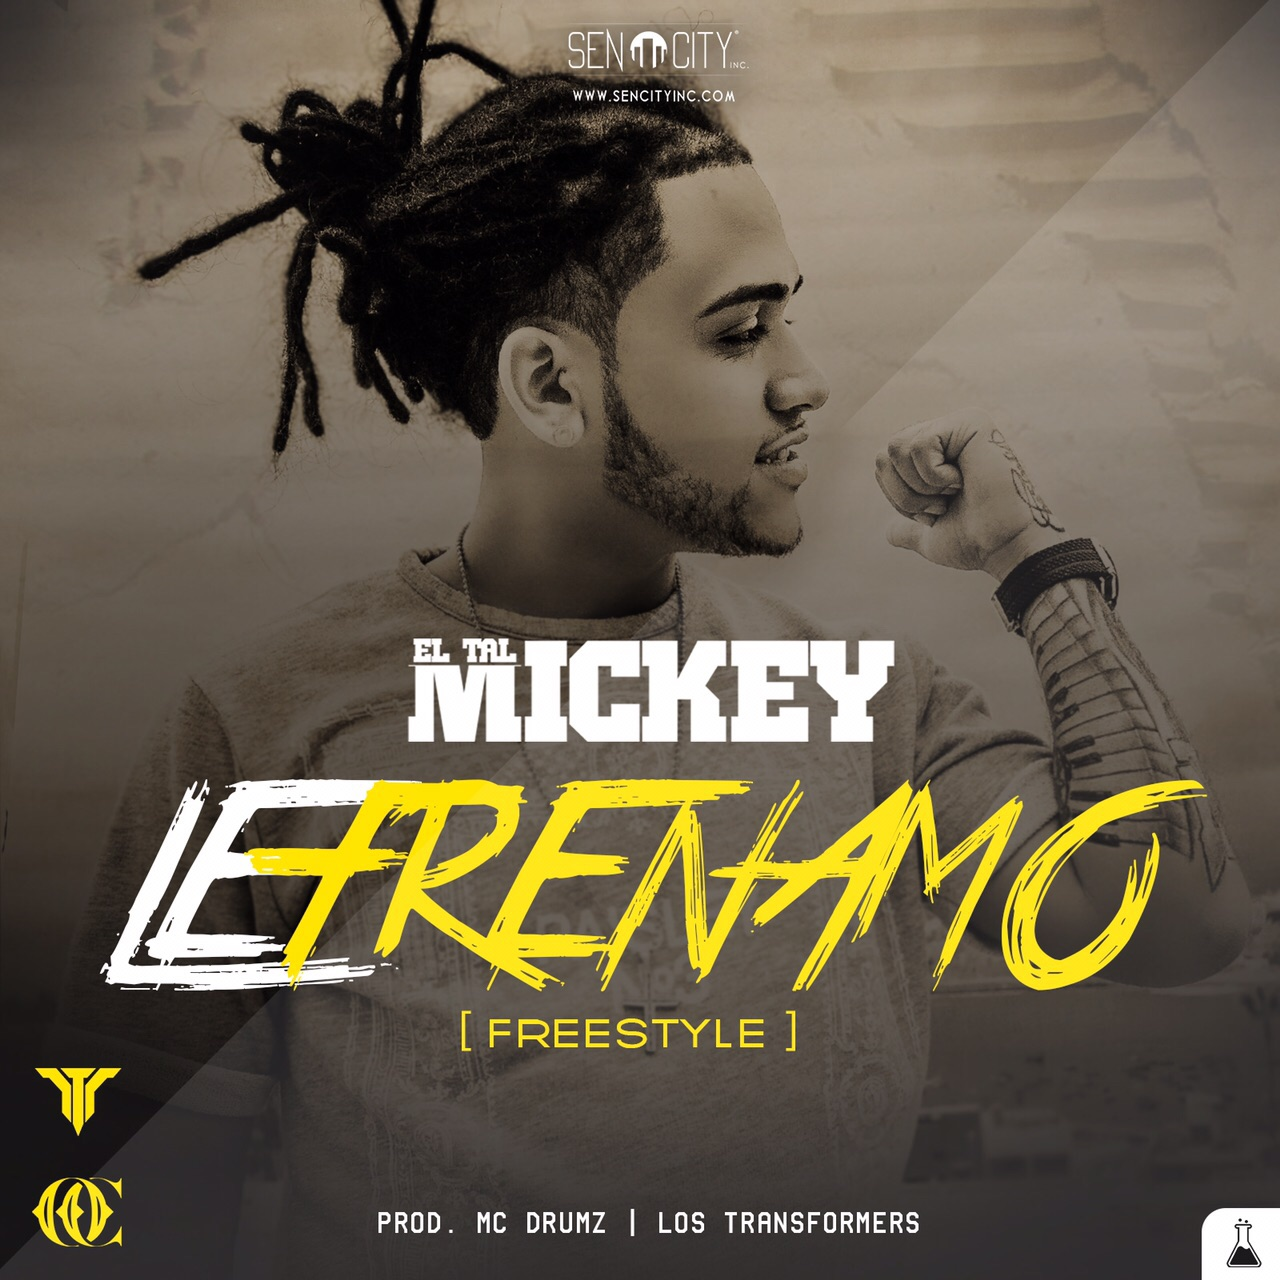 ElTalMickey - Le Frenamo (Freestyle) (Prod By Los Transformers)